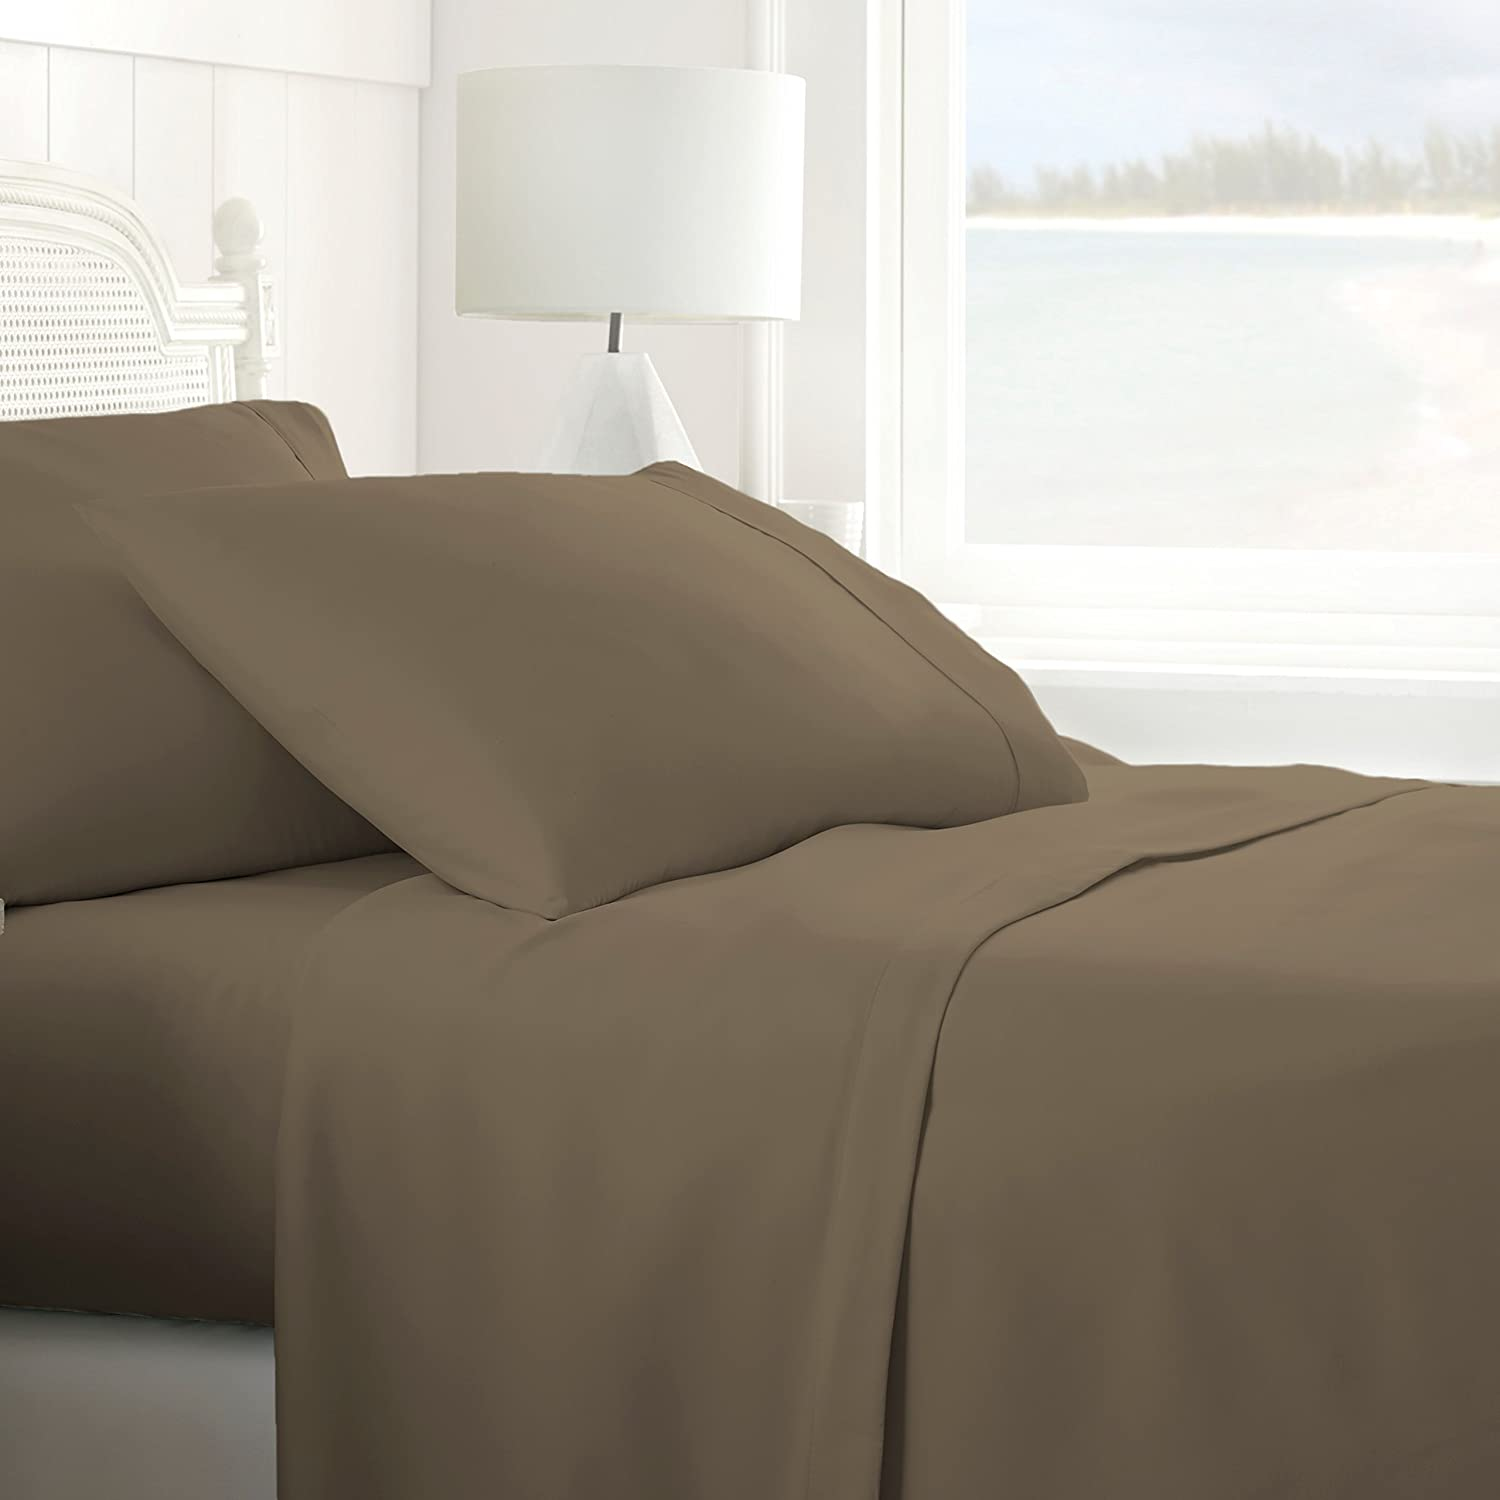 ienjoy Home IEH-4PC-QUEEN-TAUPE 4 Piece Home Collection Premium Ultra Soft Bed Sheet Set, Queen, Taupe